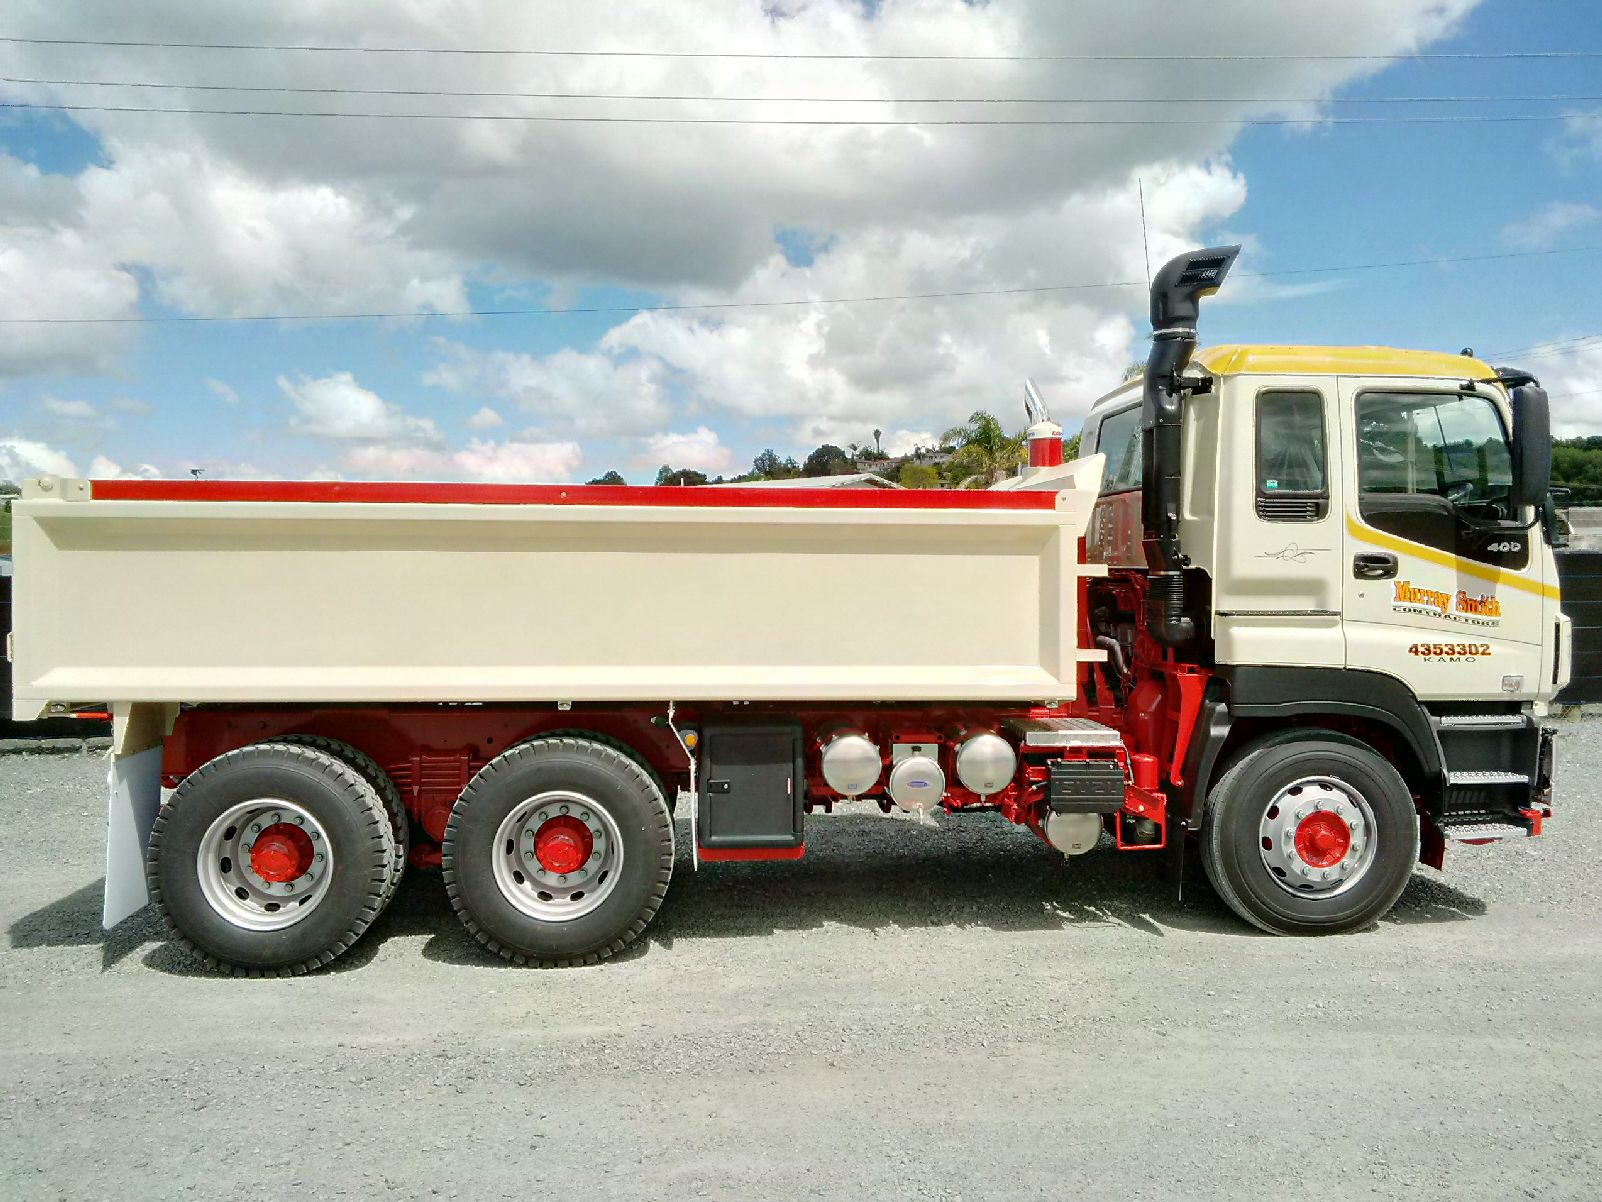 4.8m Hardox Tipper Body fitted to new Isuzu CXZ400 - extras include toolbox, water tank, chrome exhaust surround & Ringfeeder with pintle hook